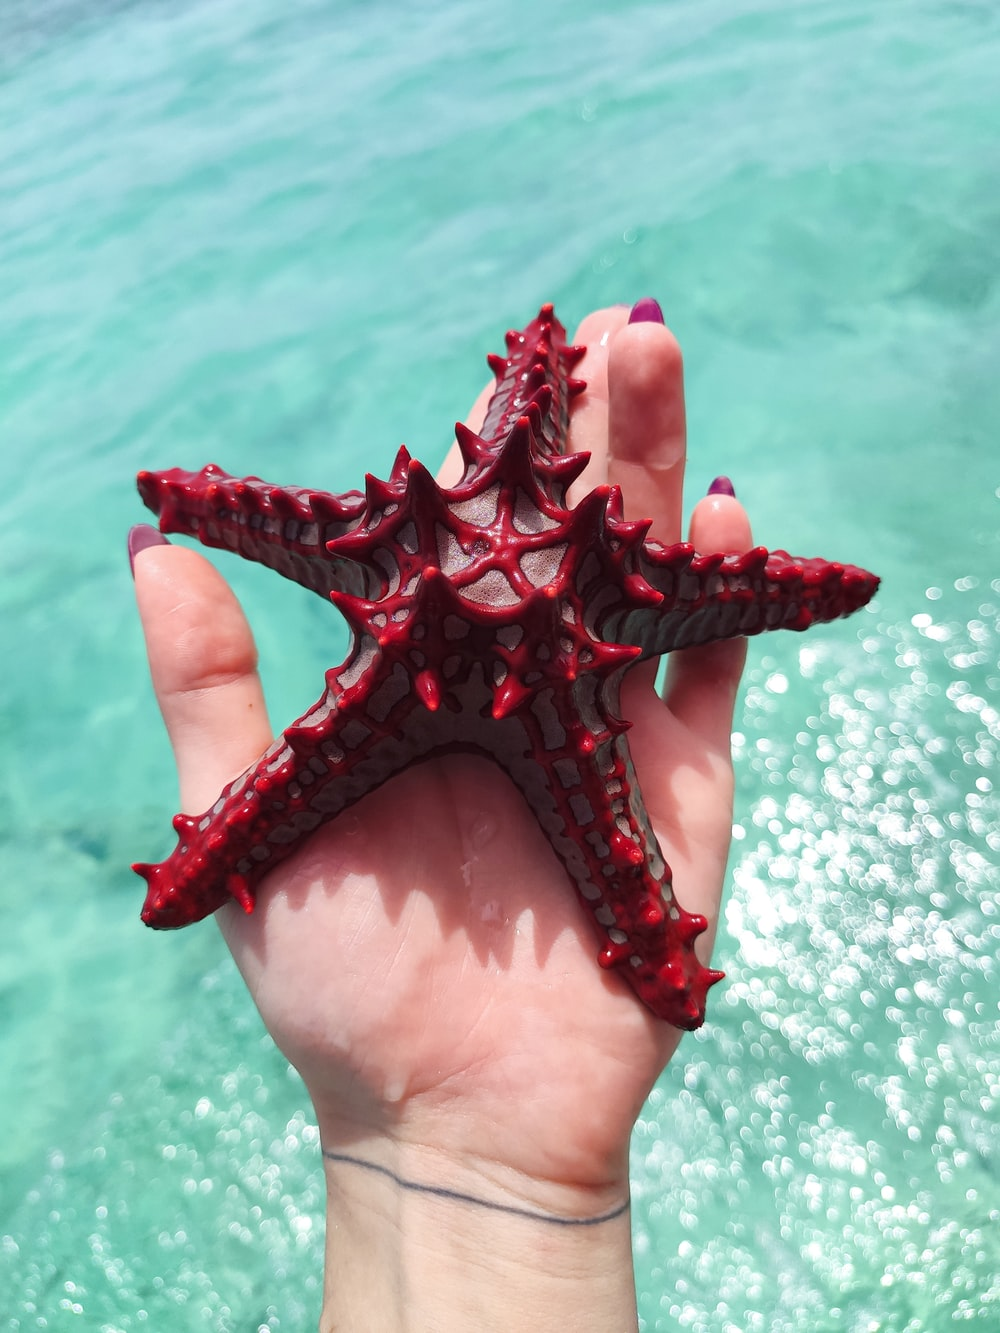 person holding red starfish during daytime